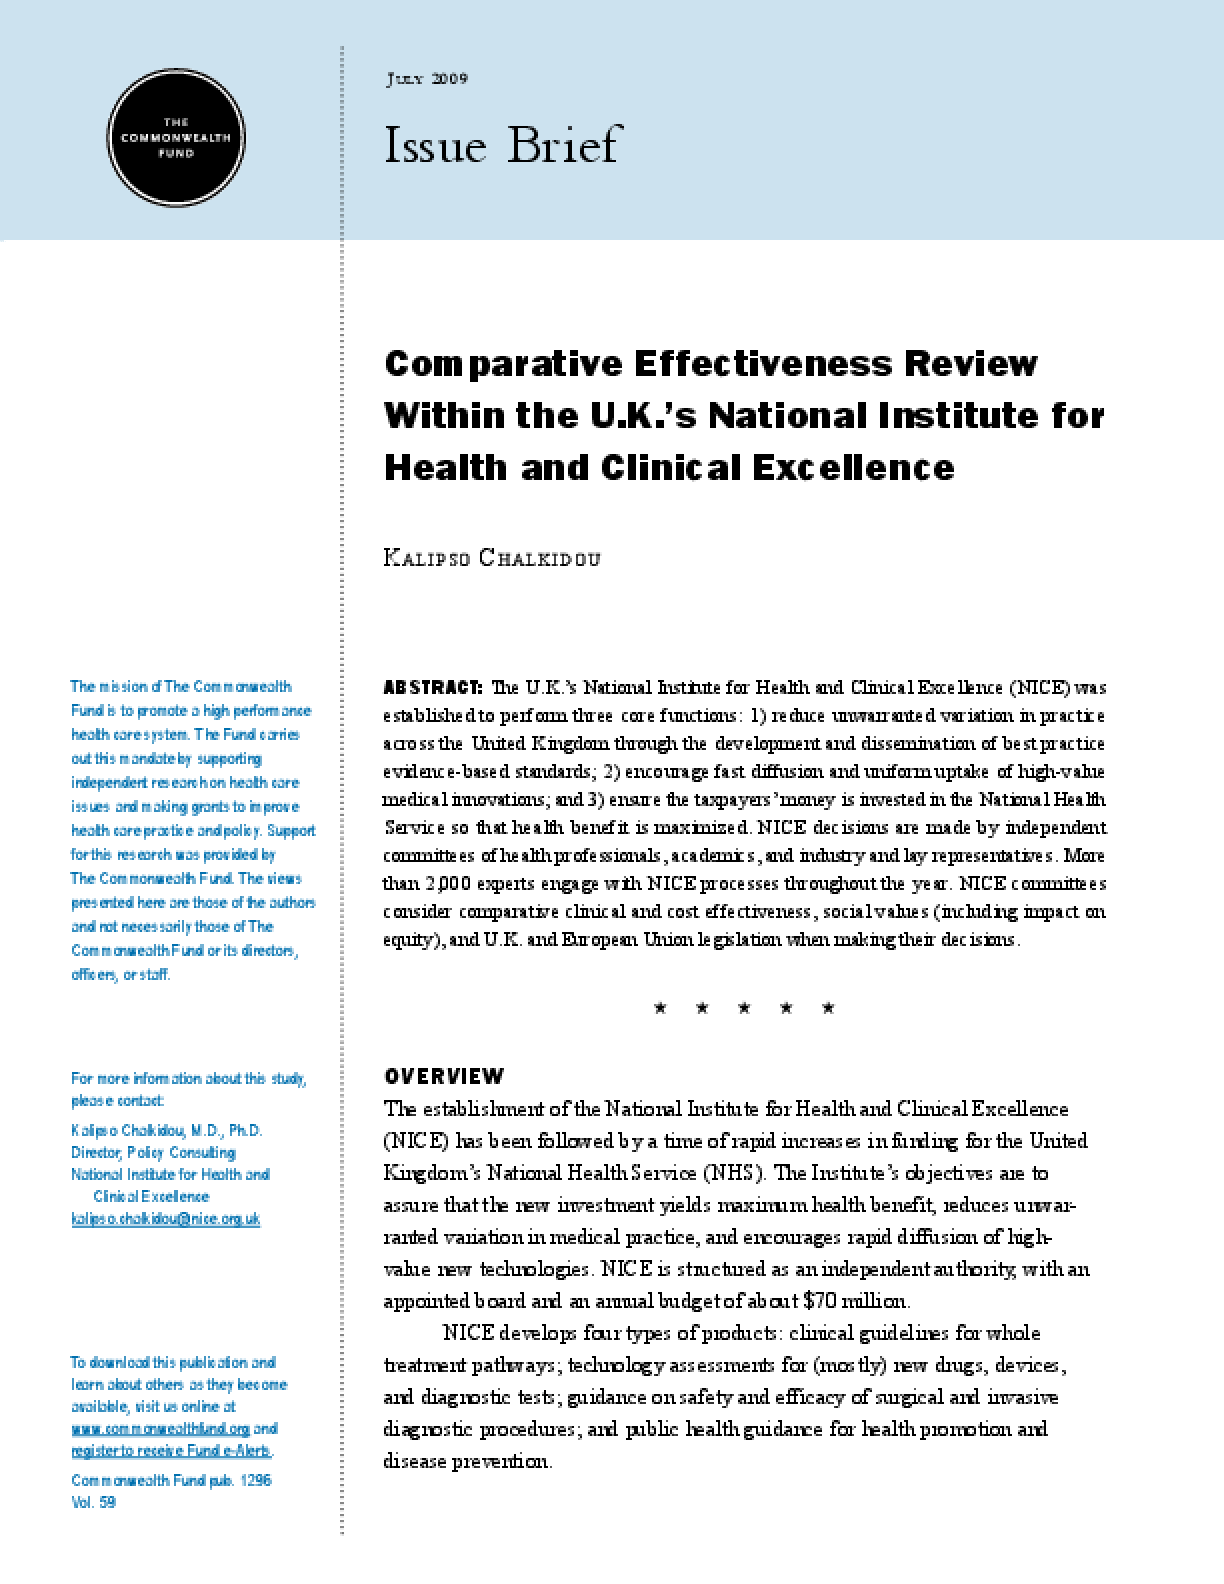 Comparative Effectiveness Review Within the U.K.'s National Institute for Health and Clinical Excellence